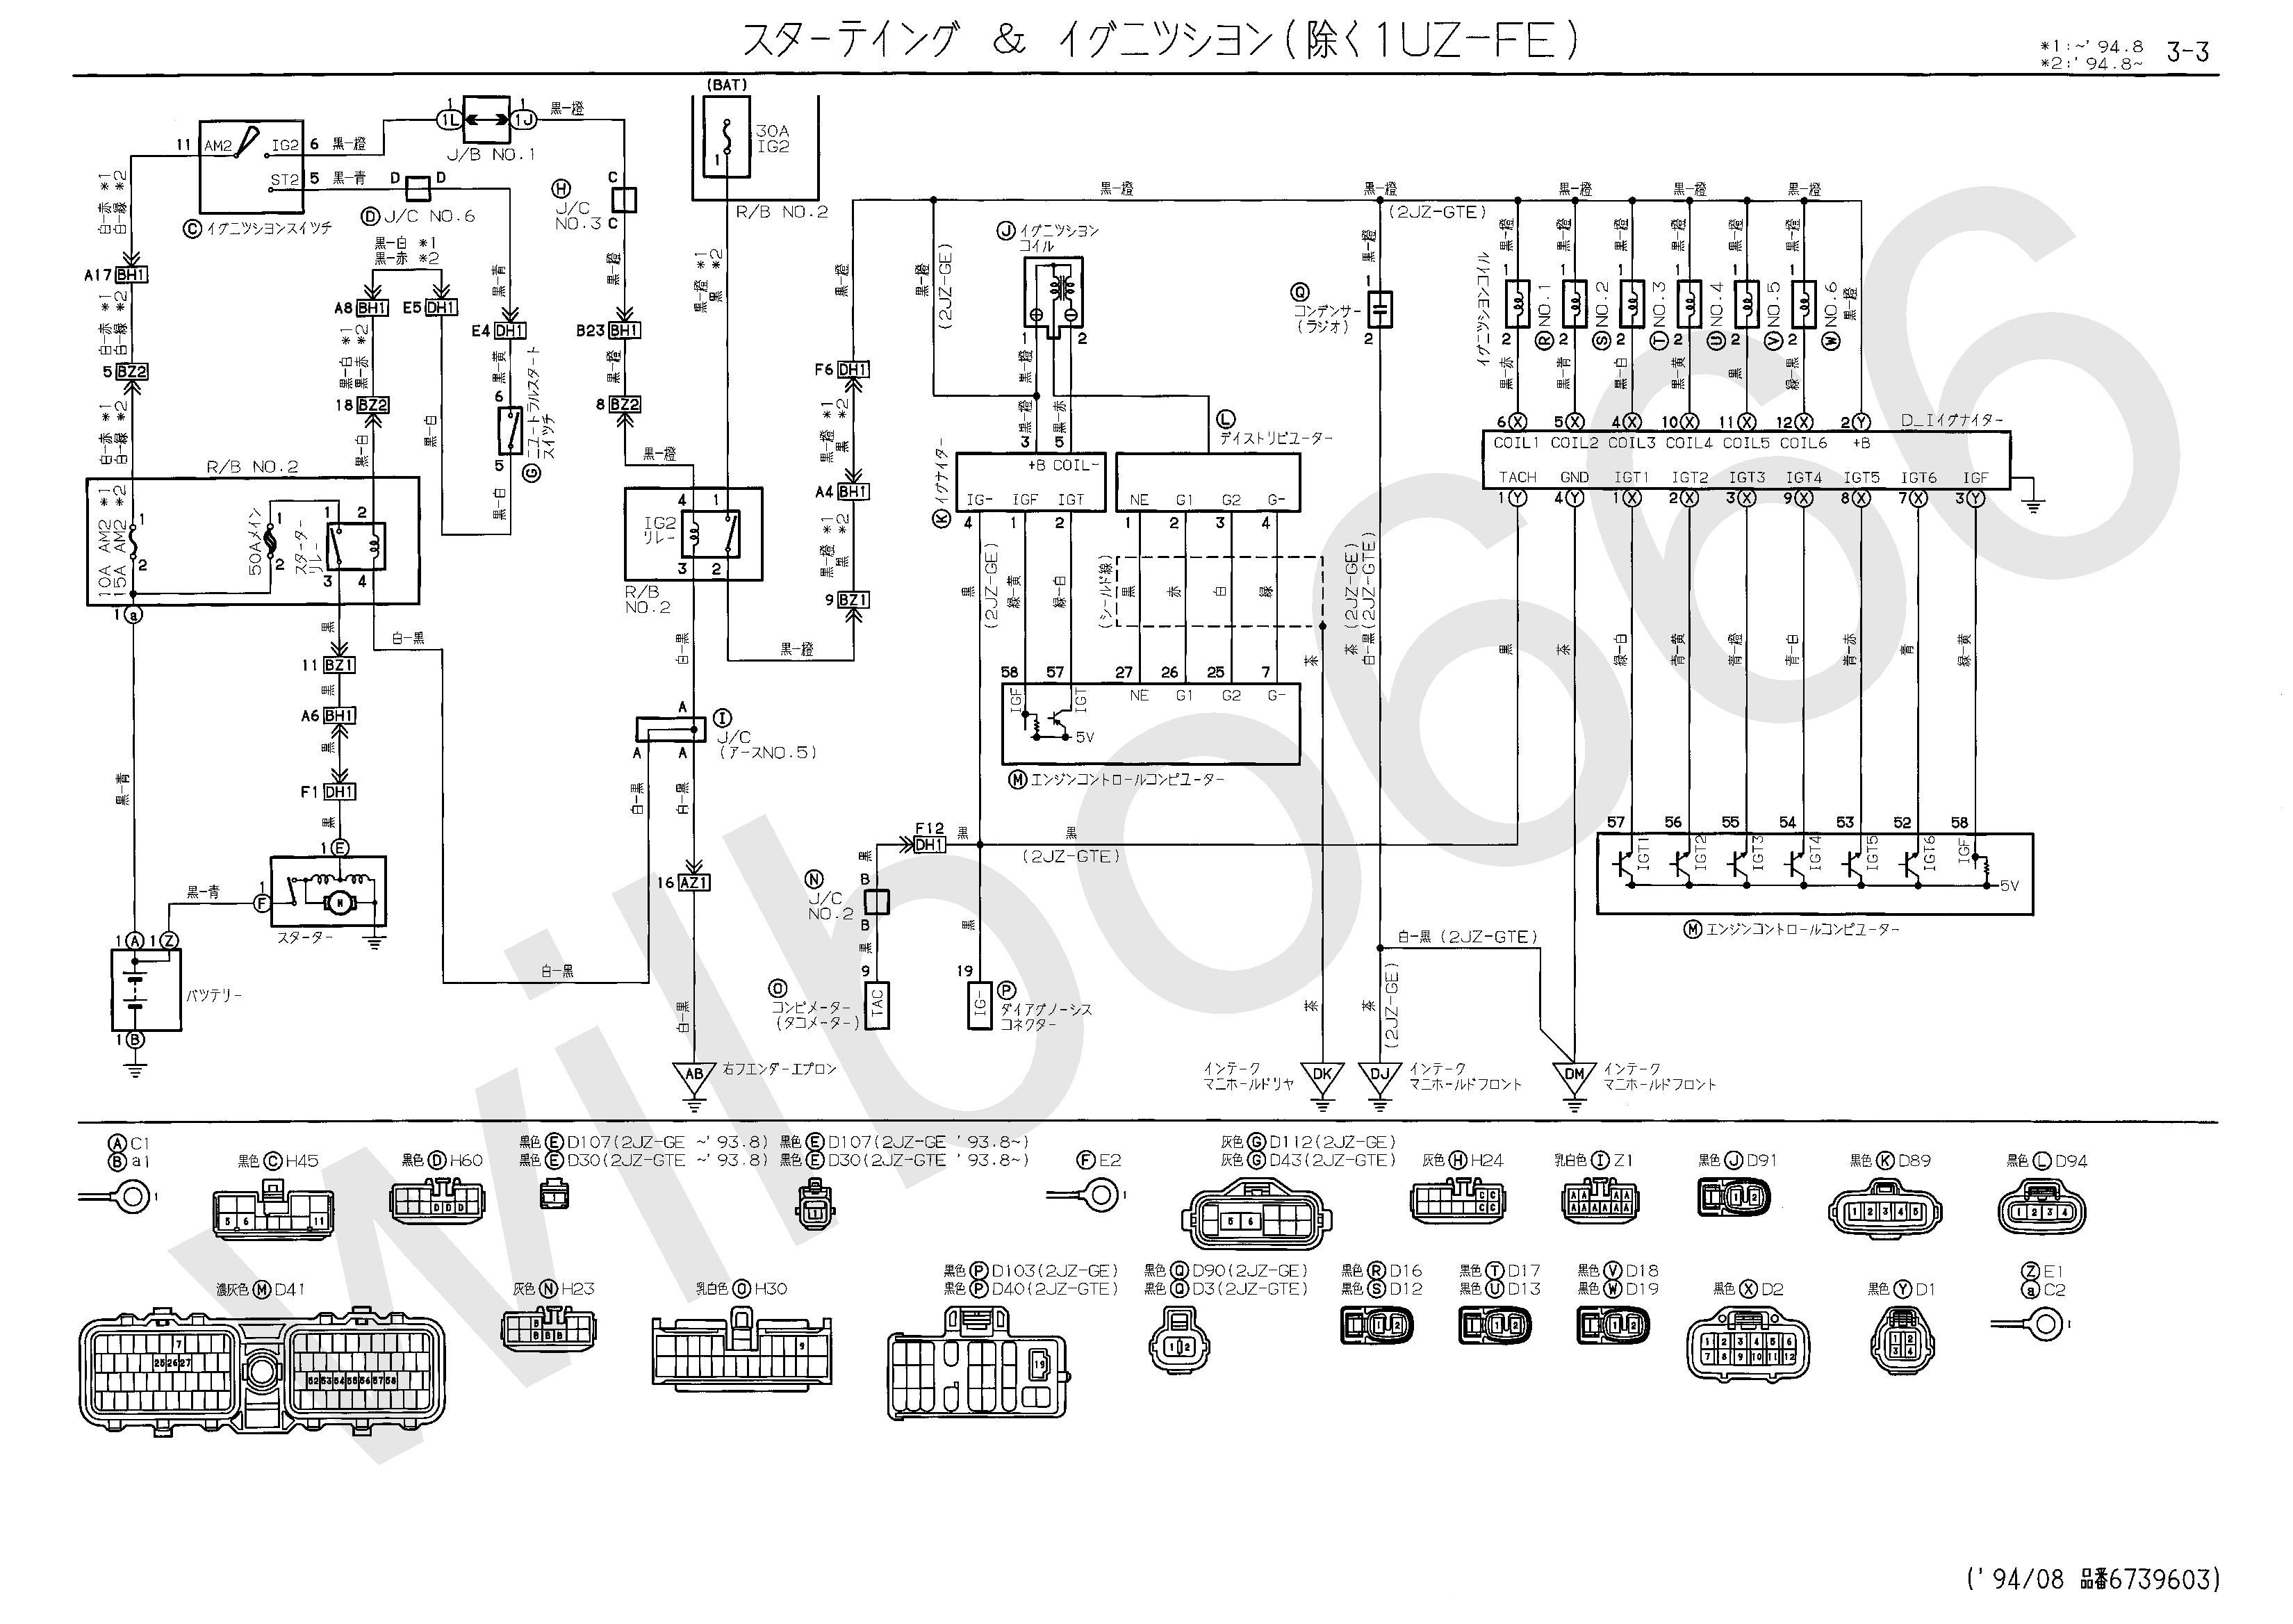 JZS14%23%2C UZS14%23 Electrical Wiring Diagram 6739604 3 3 wilbo666 2jz gte jzs147 aristo engine wiring 2jz wiring diagram at gsmportal.co